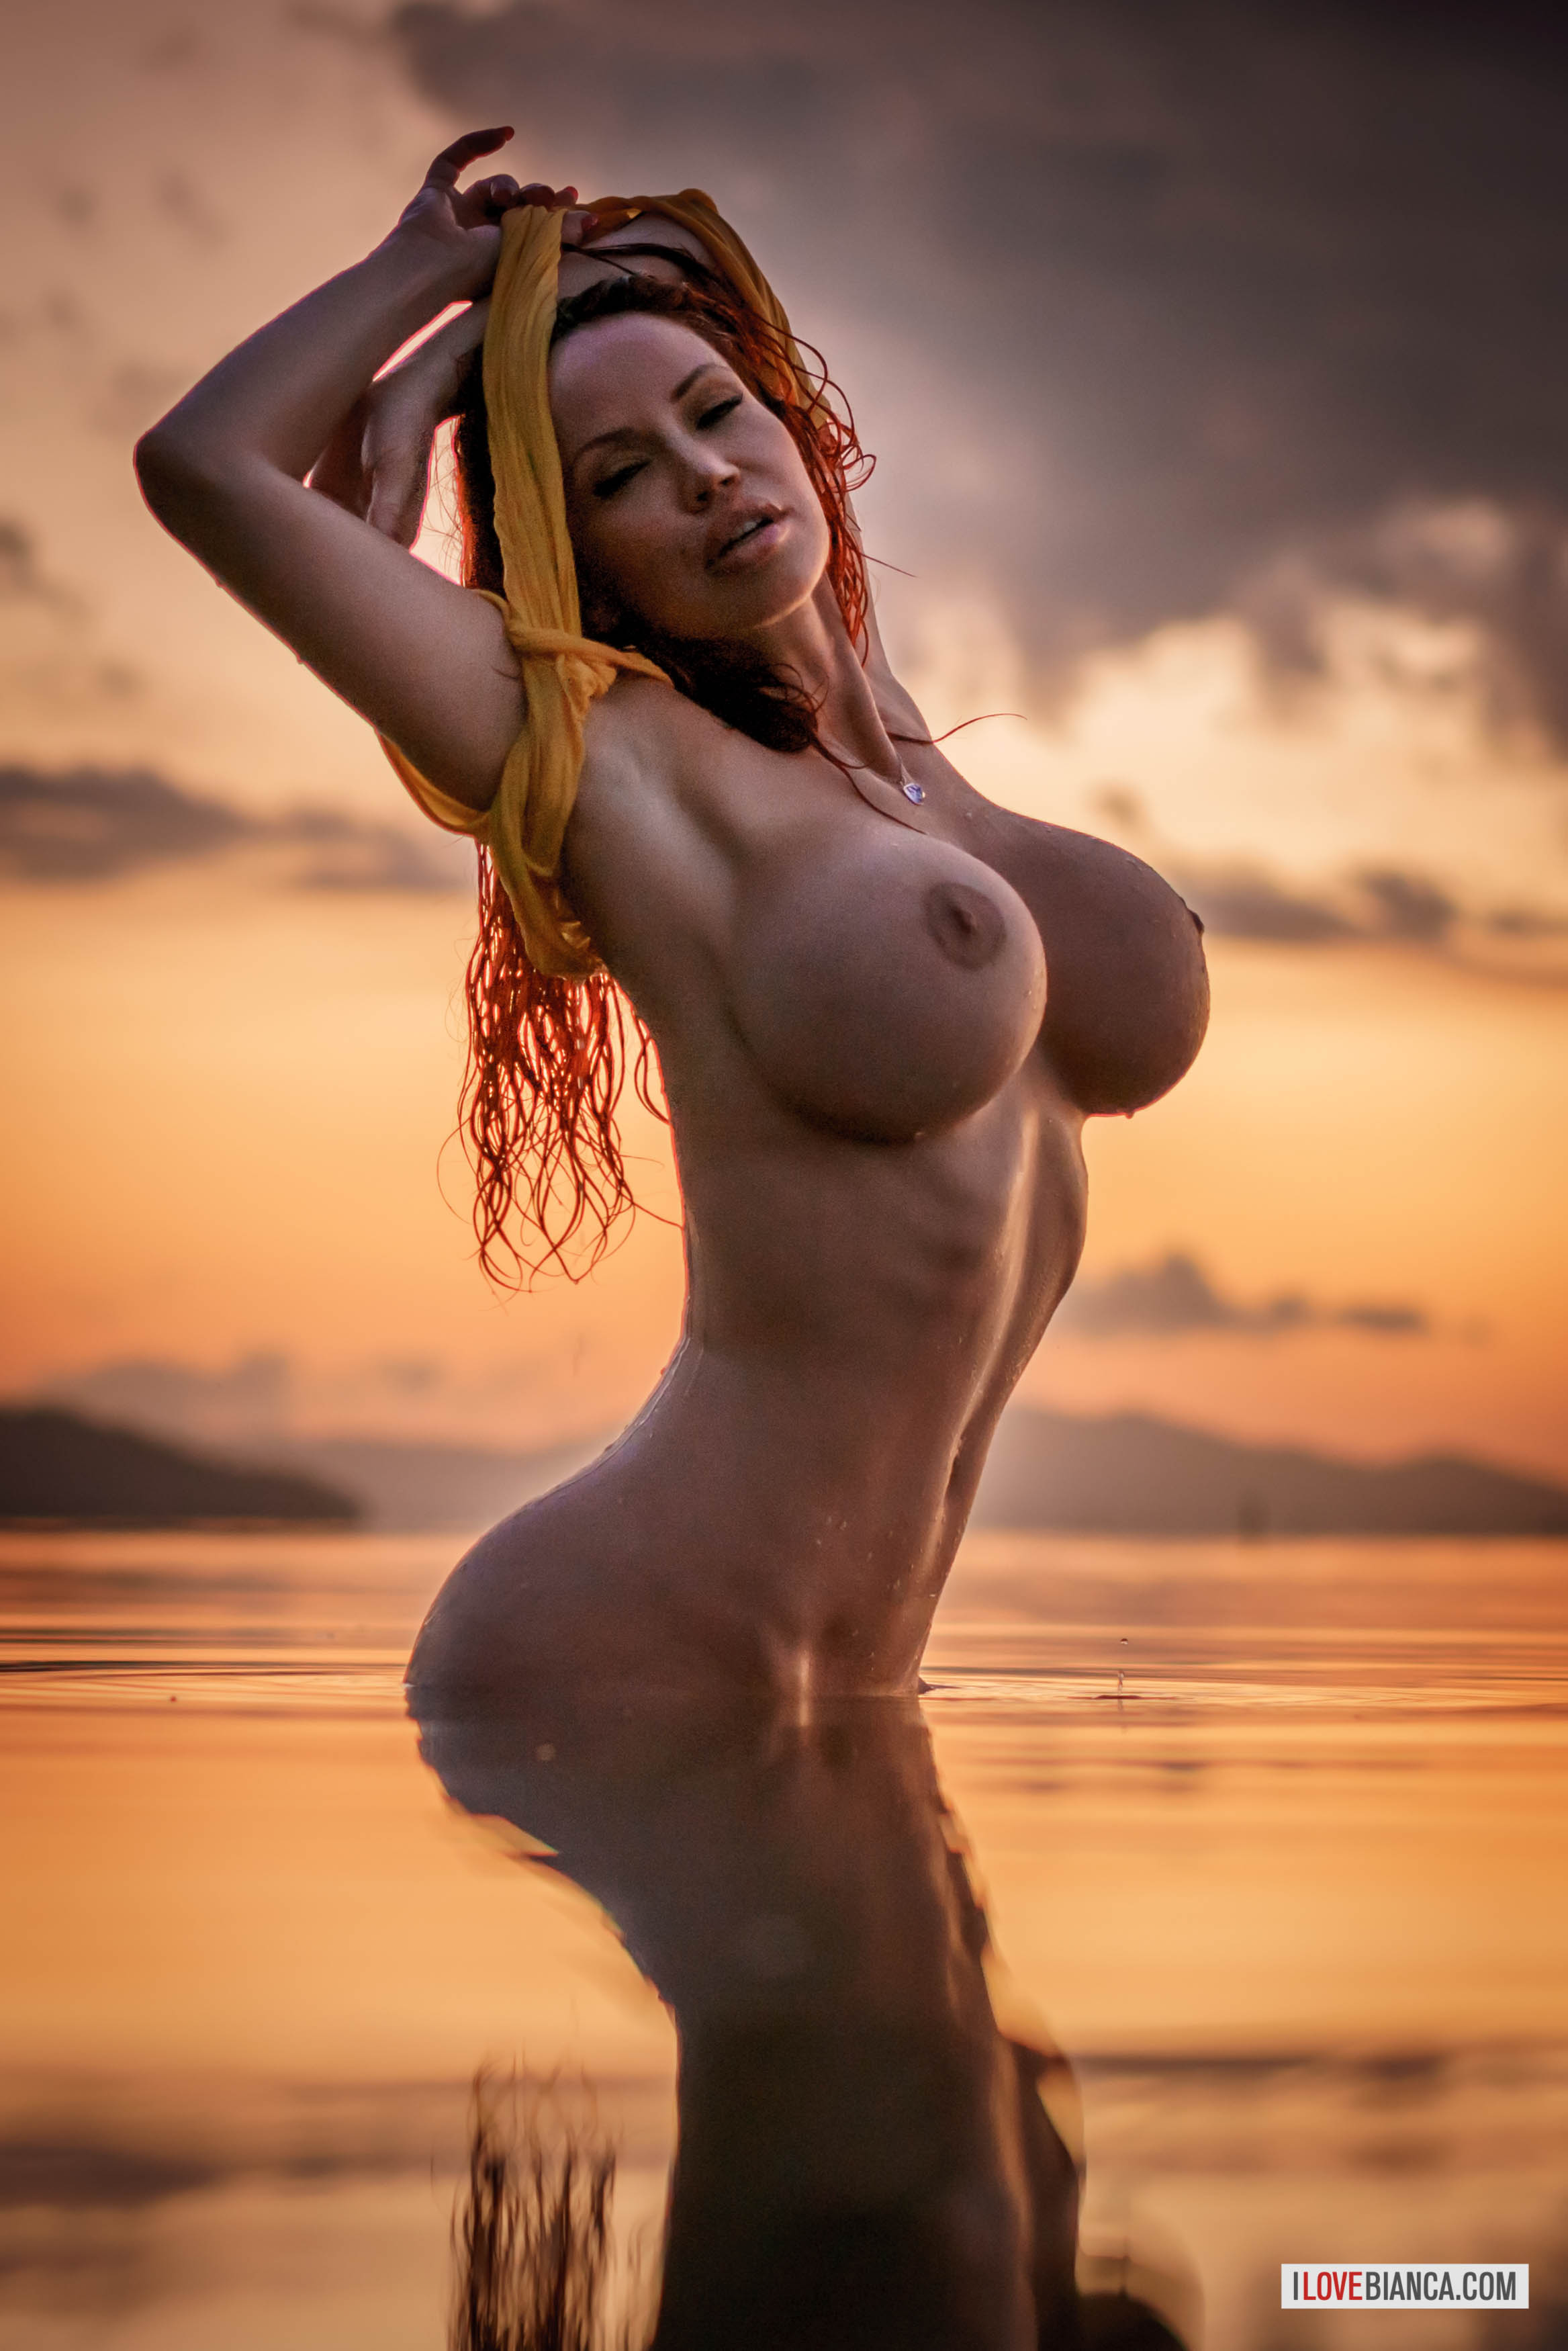 Bianca beauchamp wet and naked better